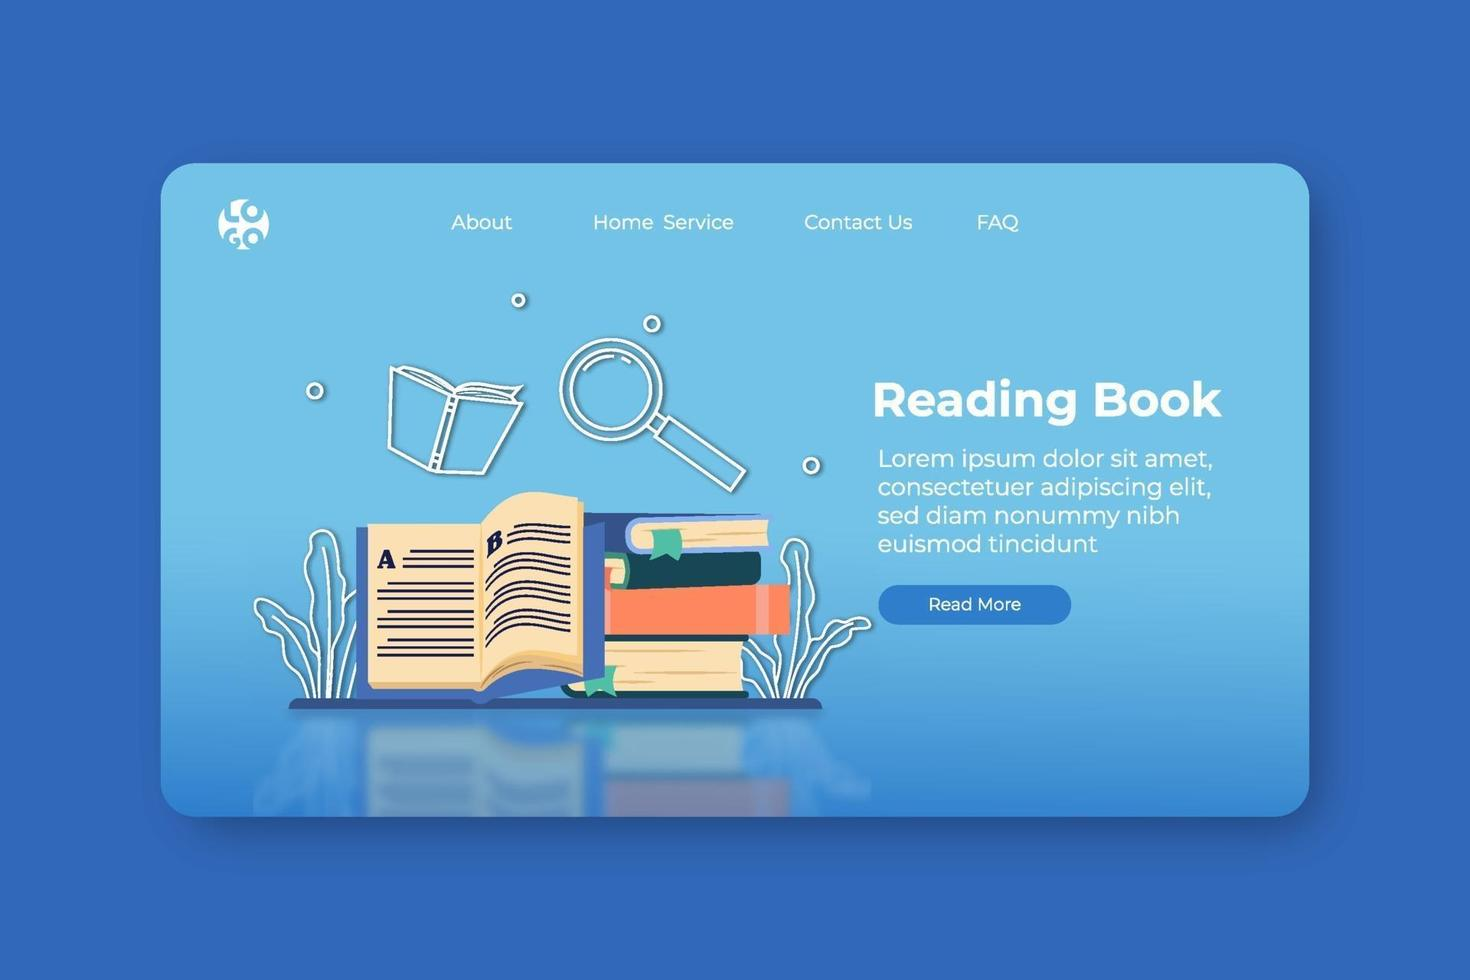 Modern Flat Design Vector Illustration. Reading Book Landing Page and Web Banner Template. Distance Education, Learning, Book is Knowledge, Home Schooling, Study Literature, E-Book, Digital Education